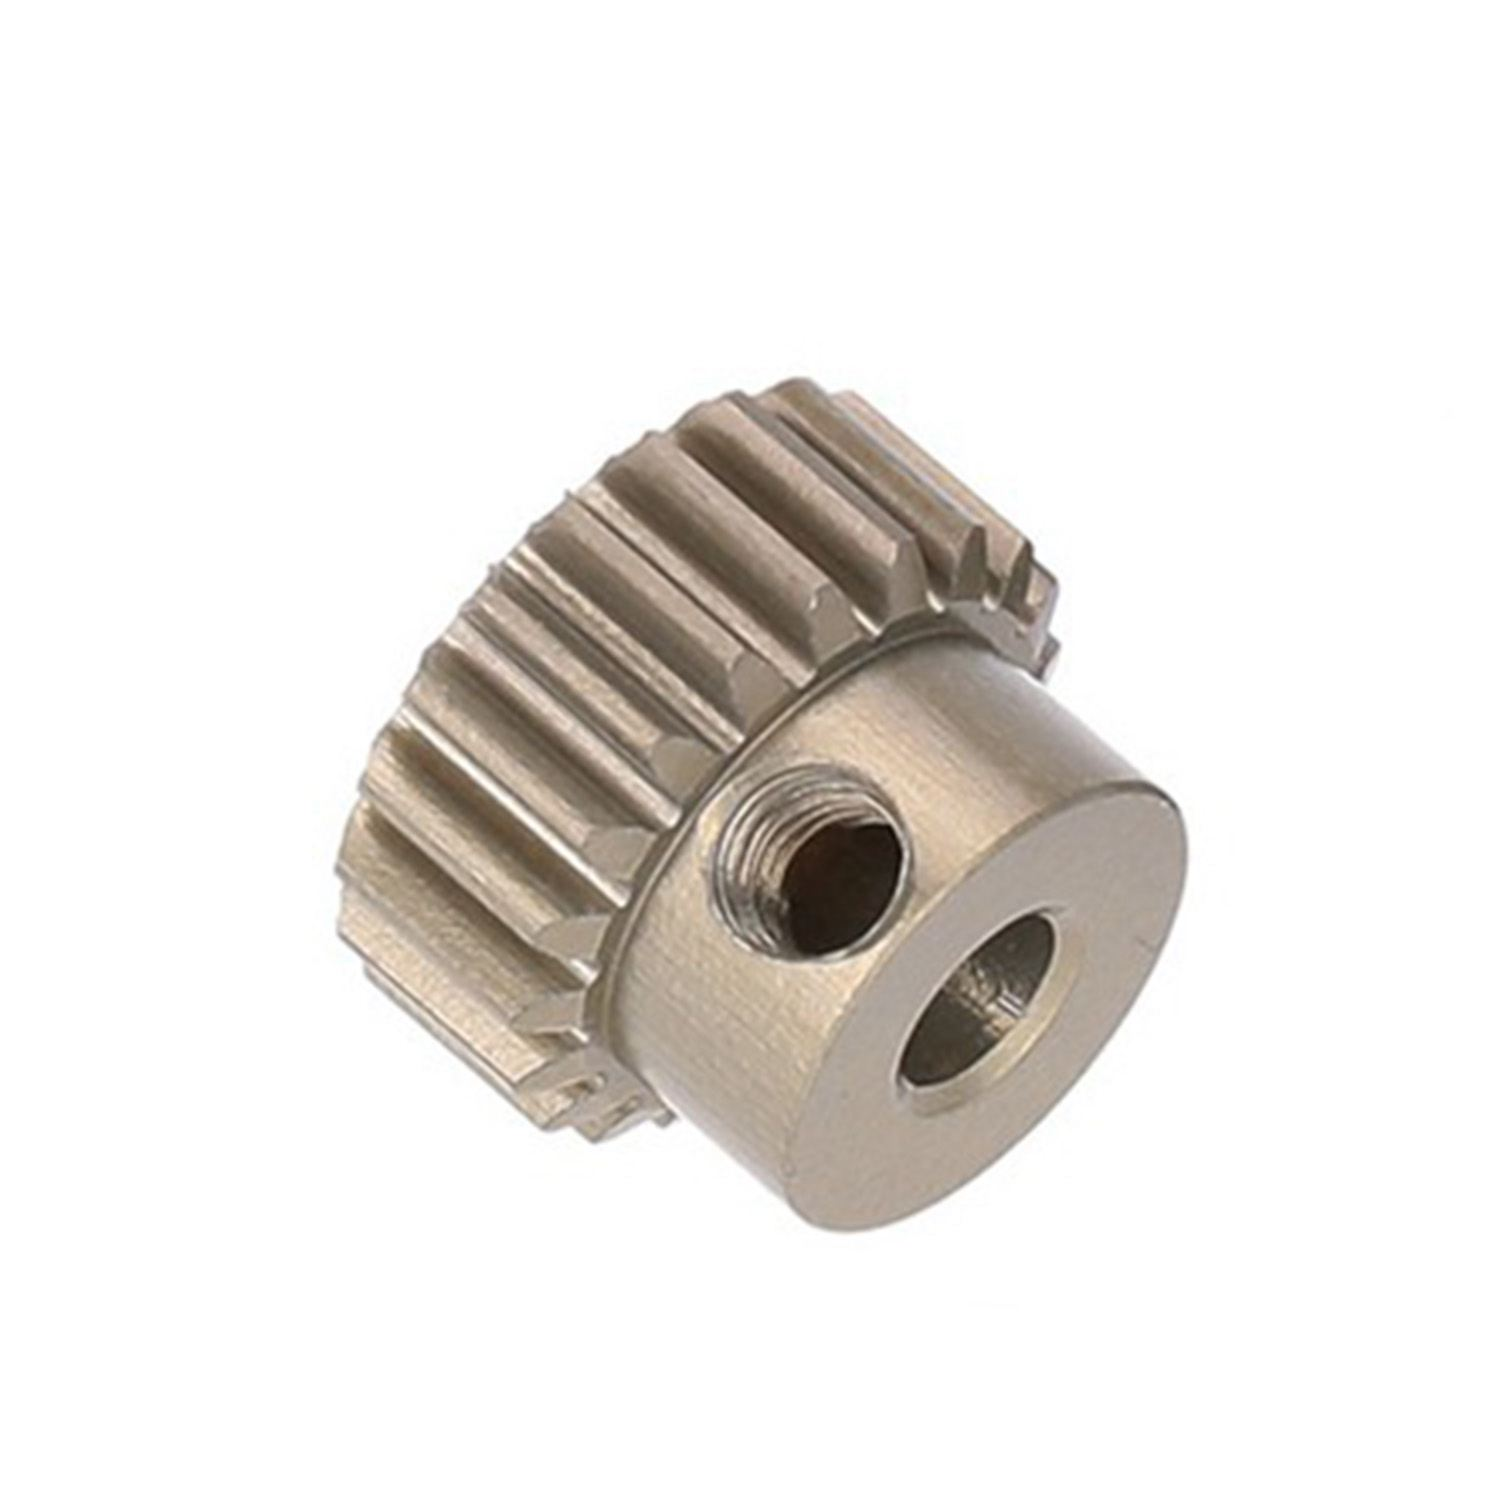 Metal 48DP Rust-proof Gear 3.175mm Motor Pinion Gear 20T 21T 28T 32T 35T 36T 38T for RC Car Brushed Brushless MotorMetal 48DP Rust-proof Gear 3.175mm Motor Pinion Gear 20T 21T 28T 32T 35T 36T 38T for RC Car Brushed Brushless Motor